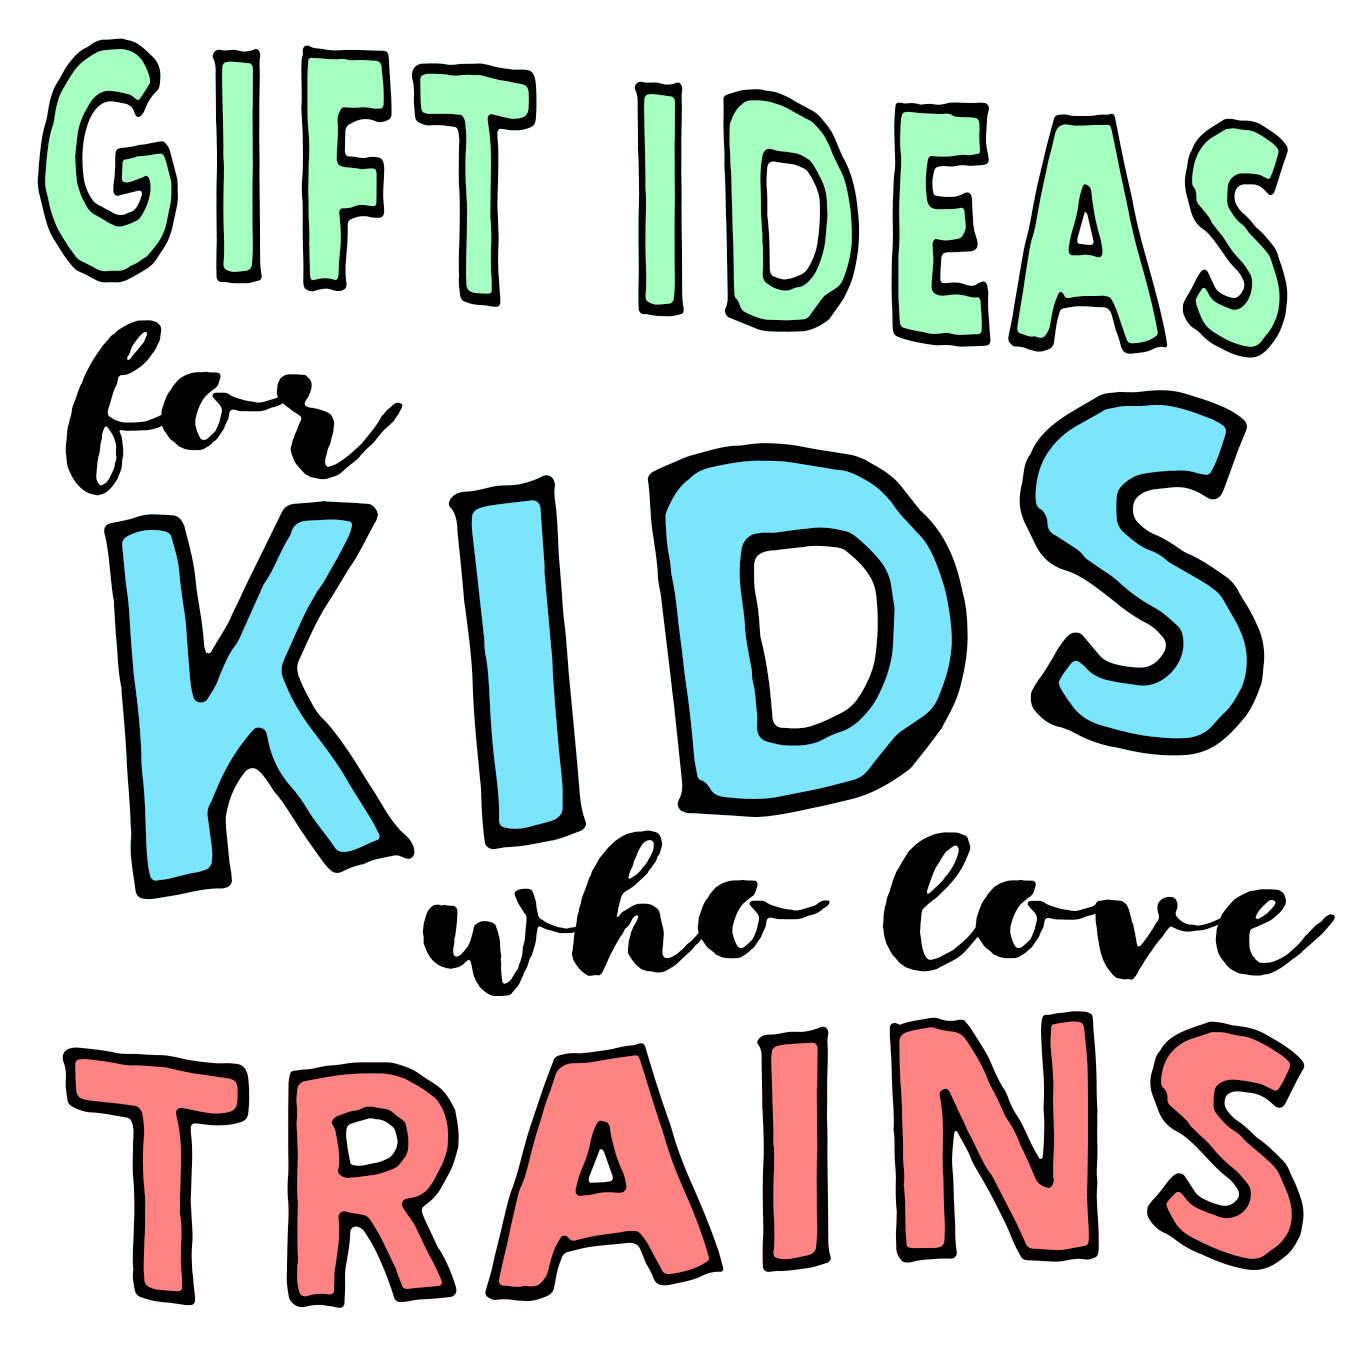 55 creative train gift ideas for kids that will make you a hero